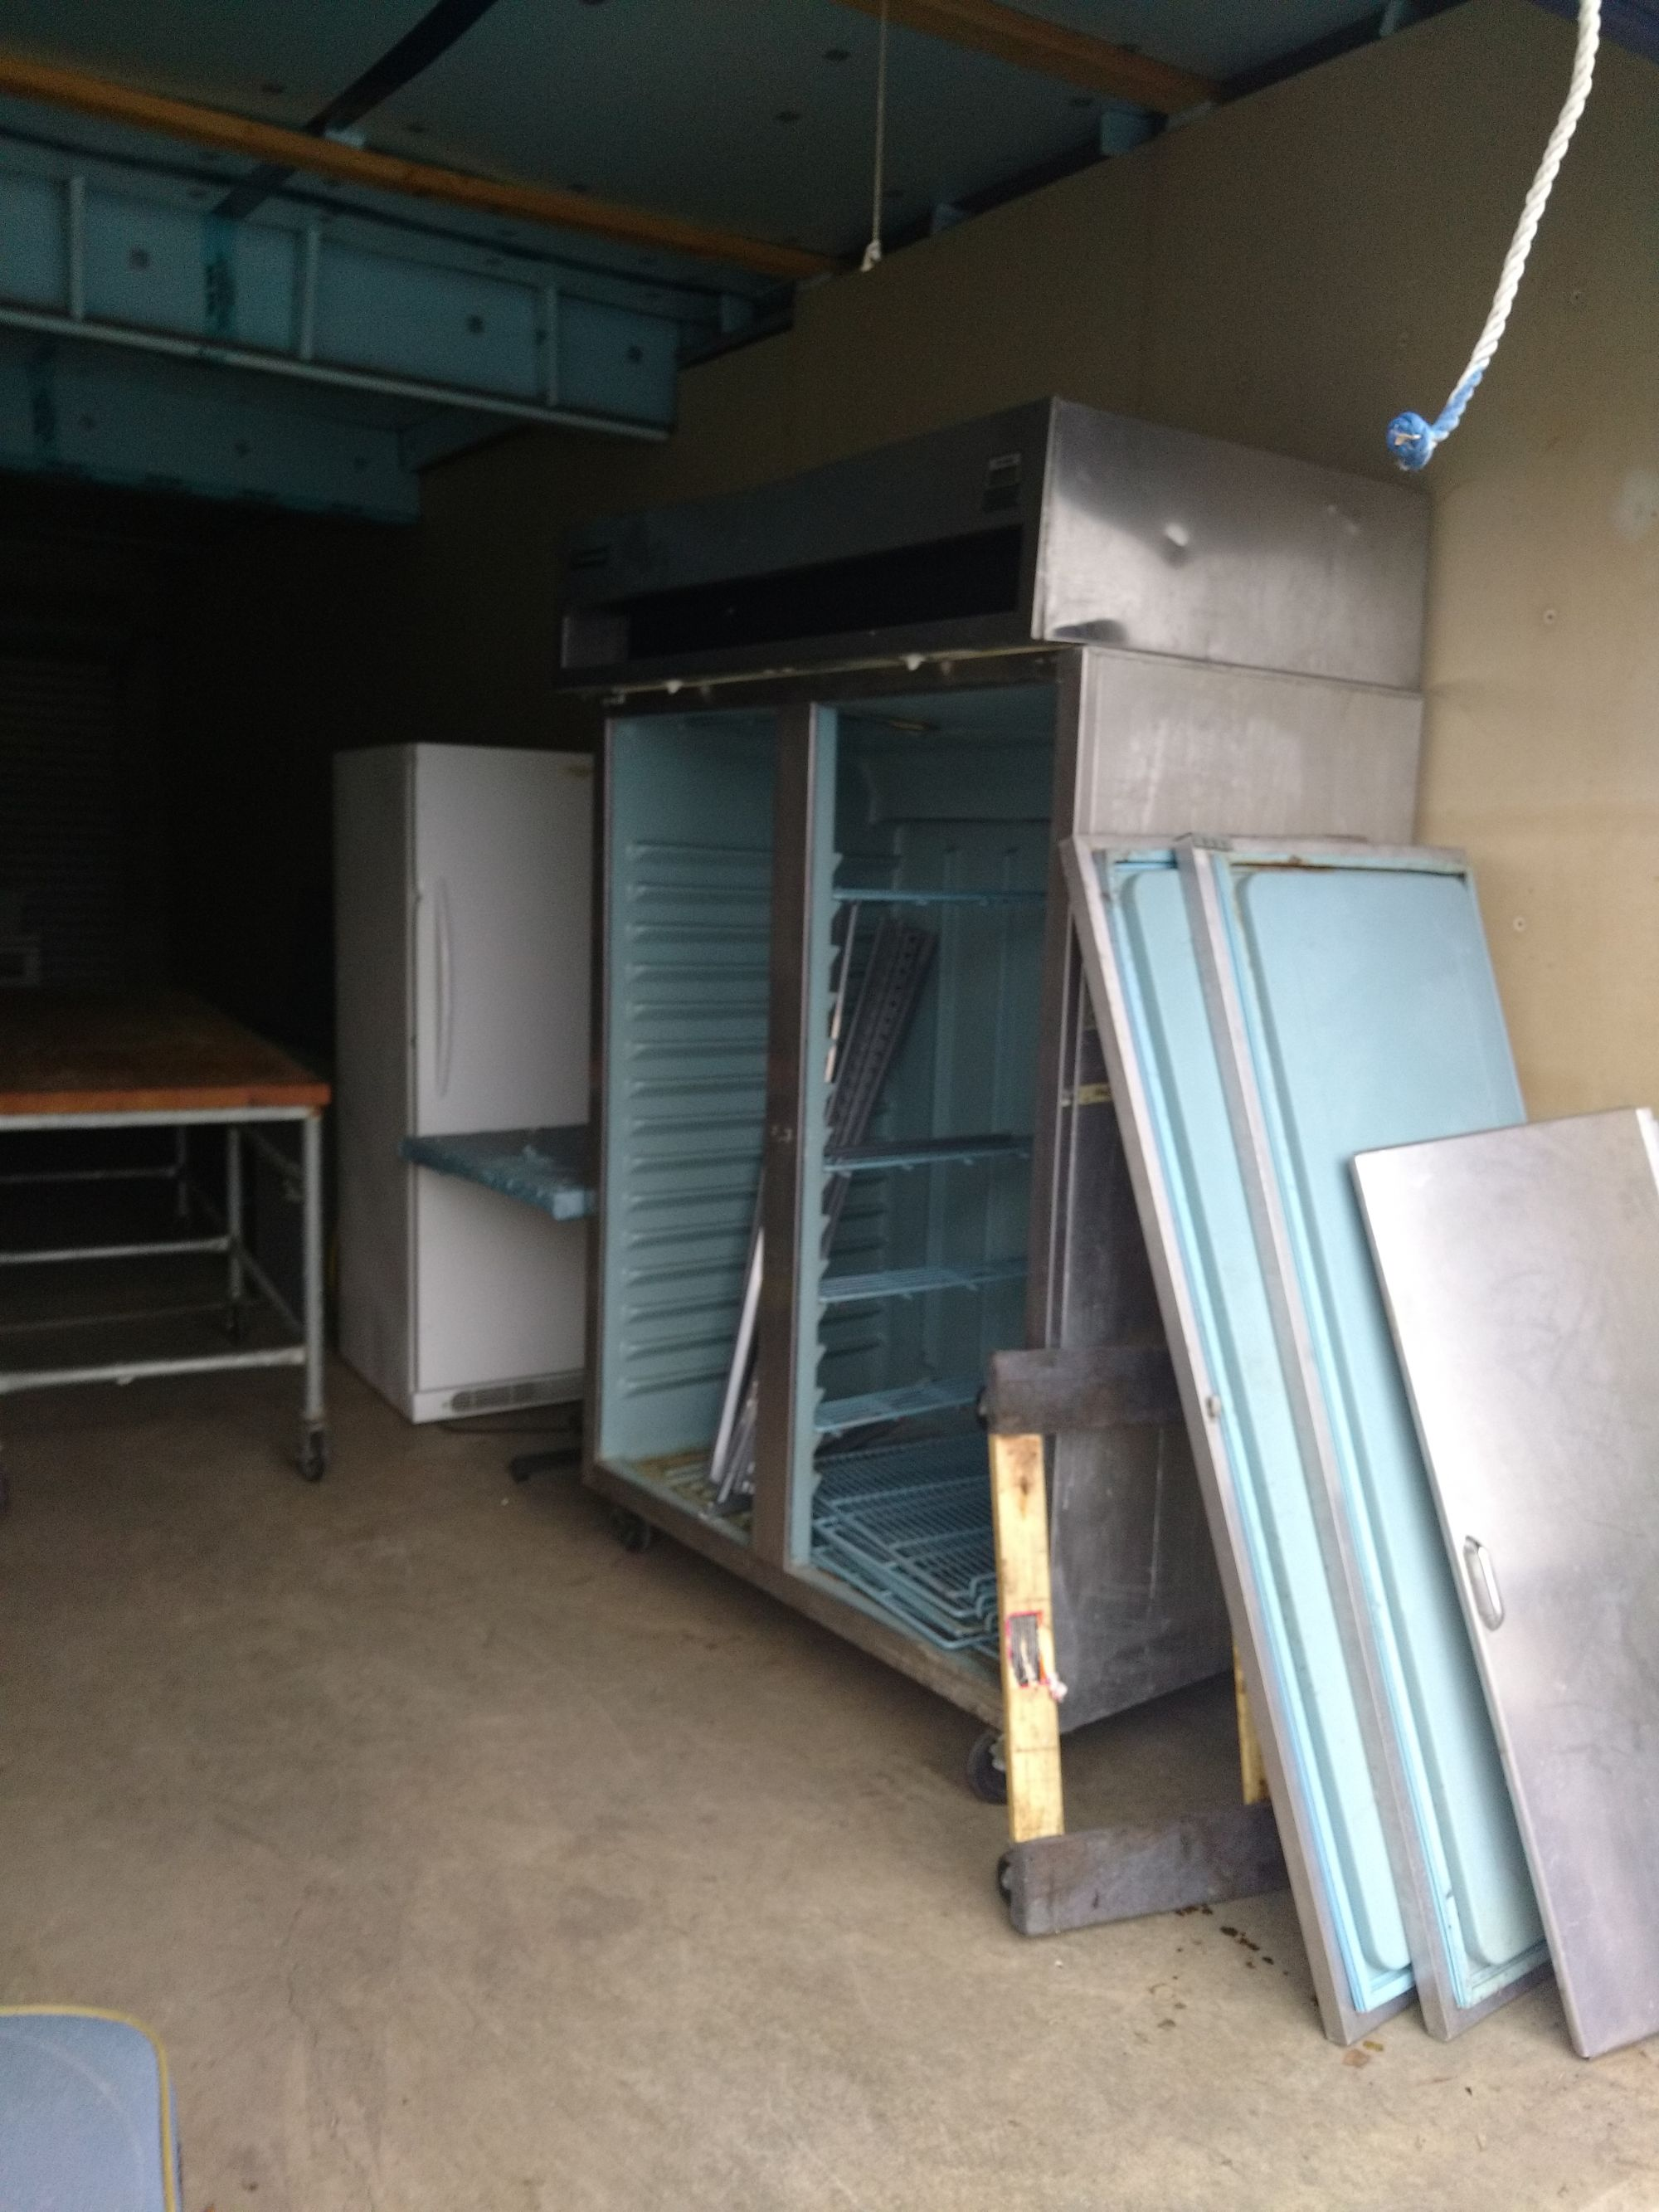 Storage Unit Auction: 552466  West Lafayette, IN  StorageTreasures.com